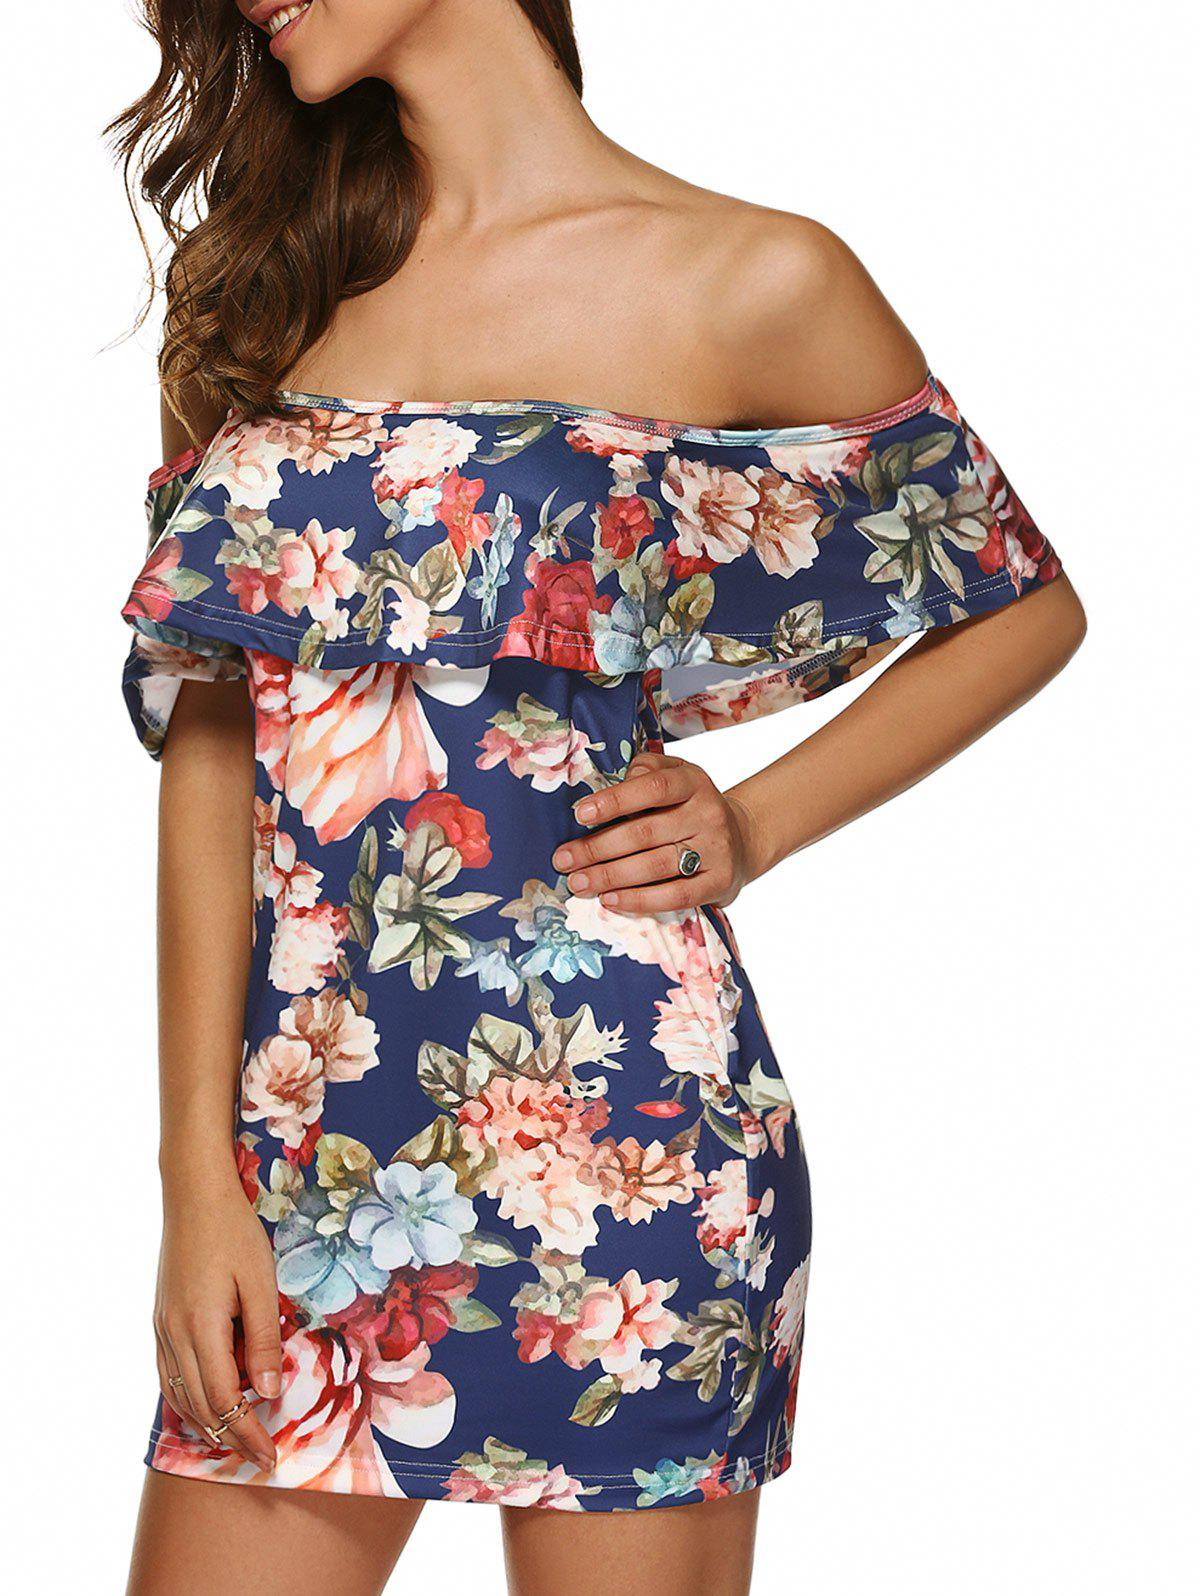 Chic Flounced Floral Print Off The Shoulder Cocktail Dress